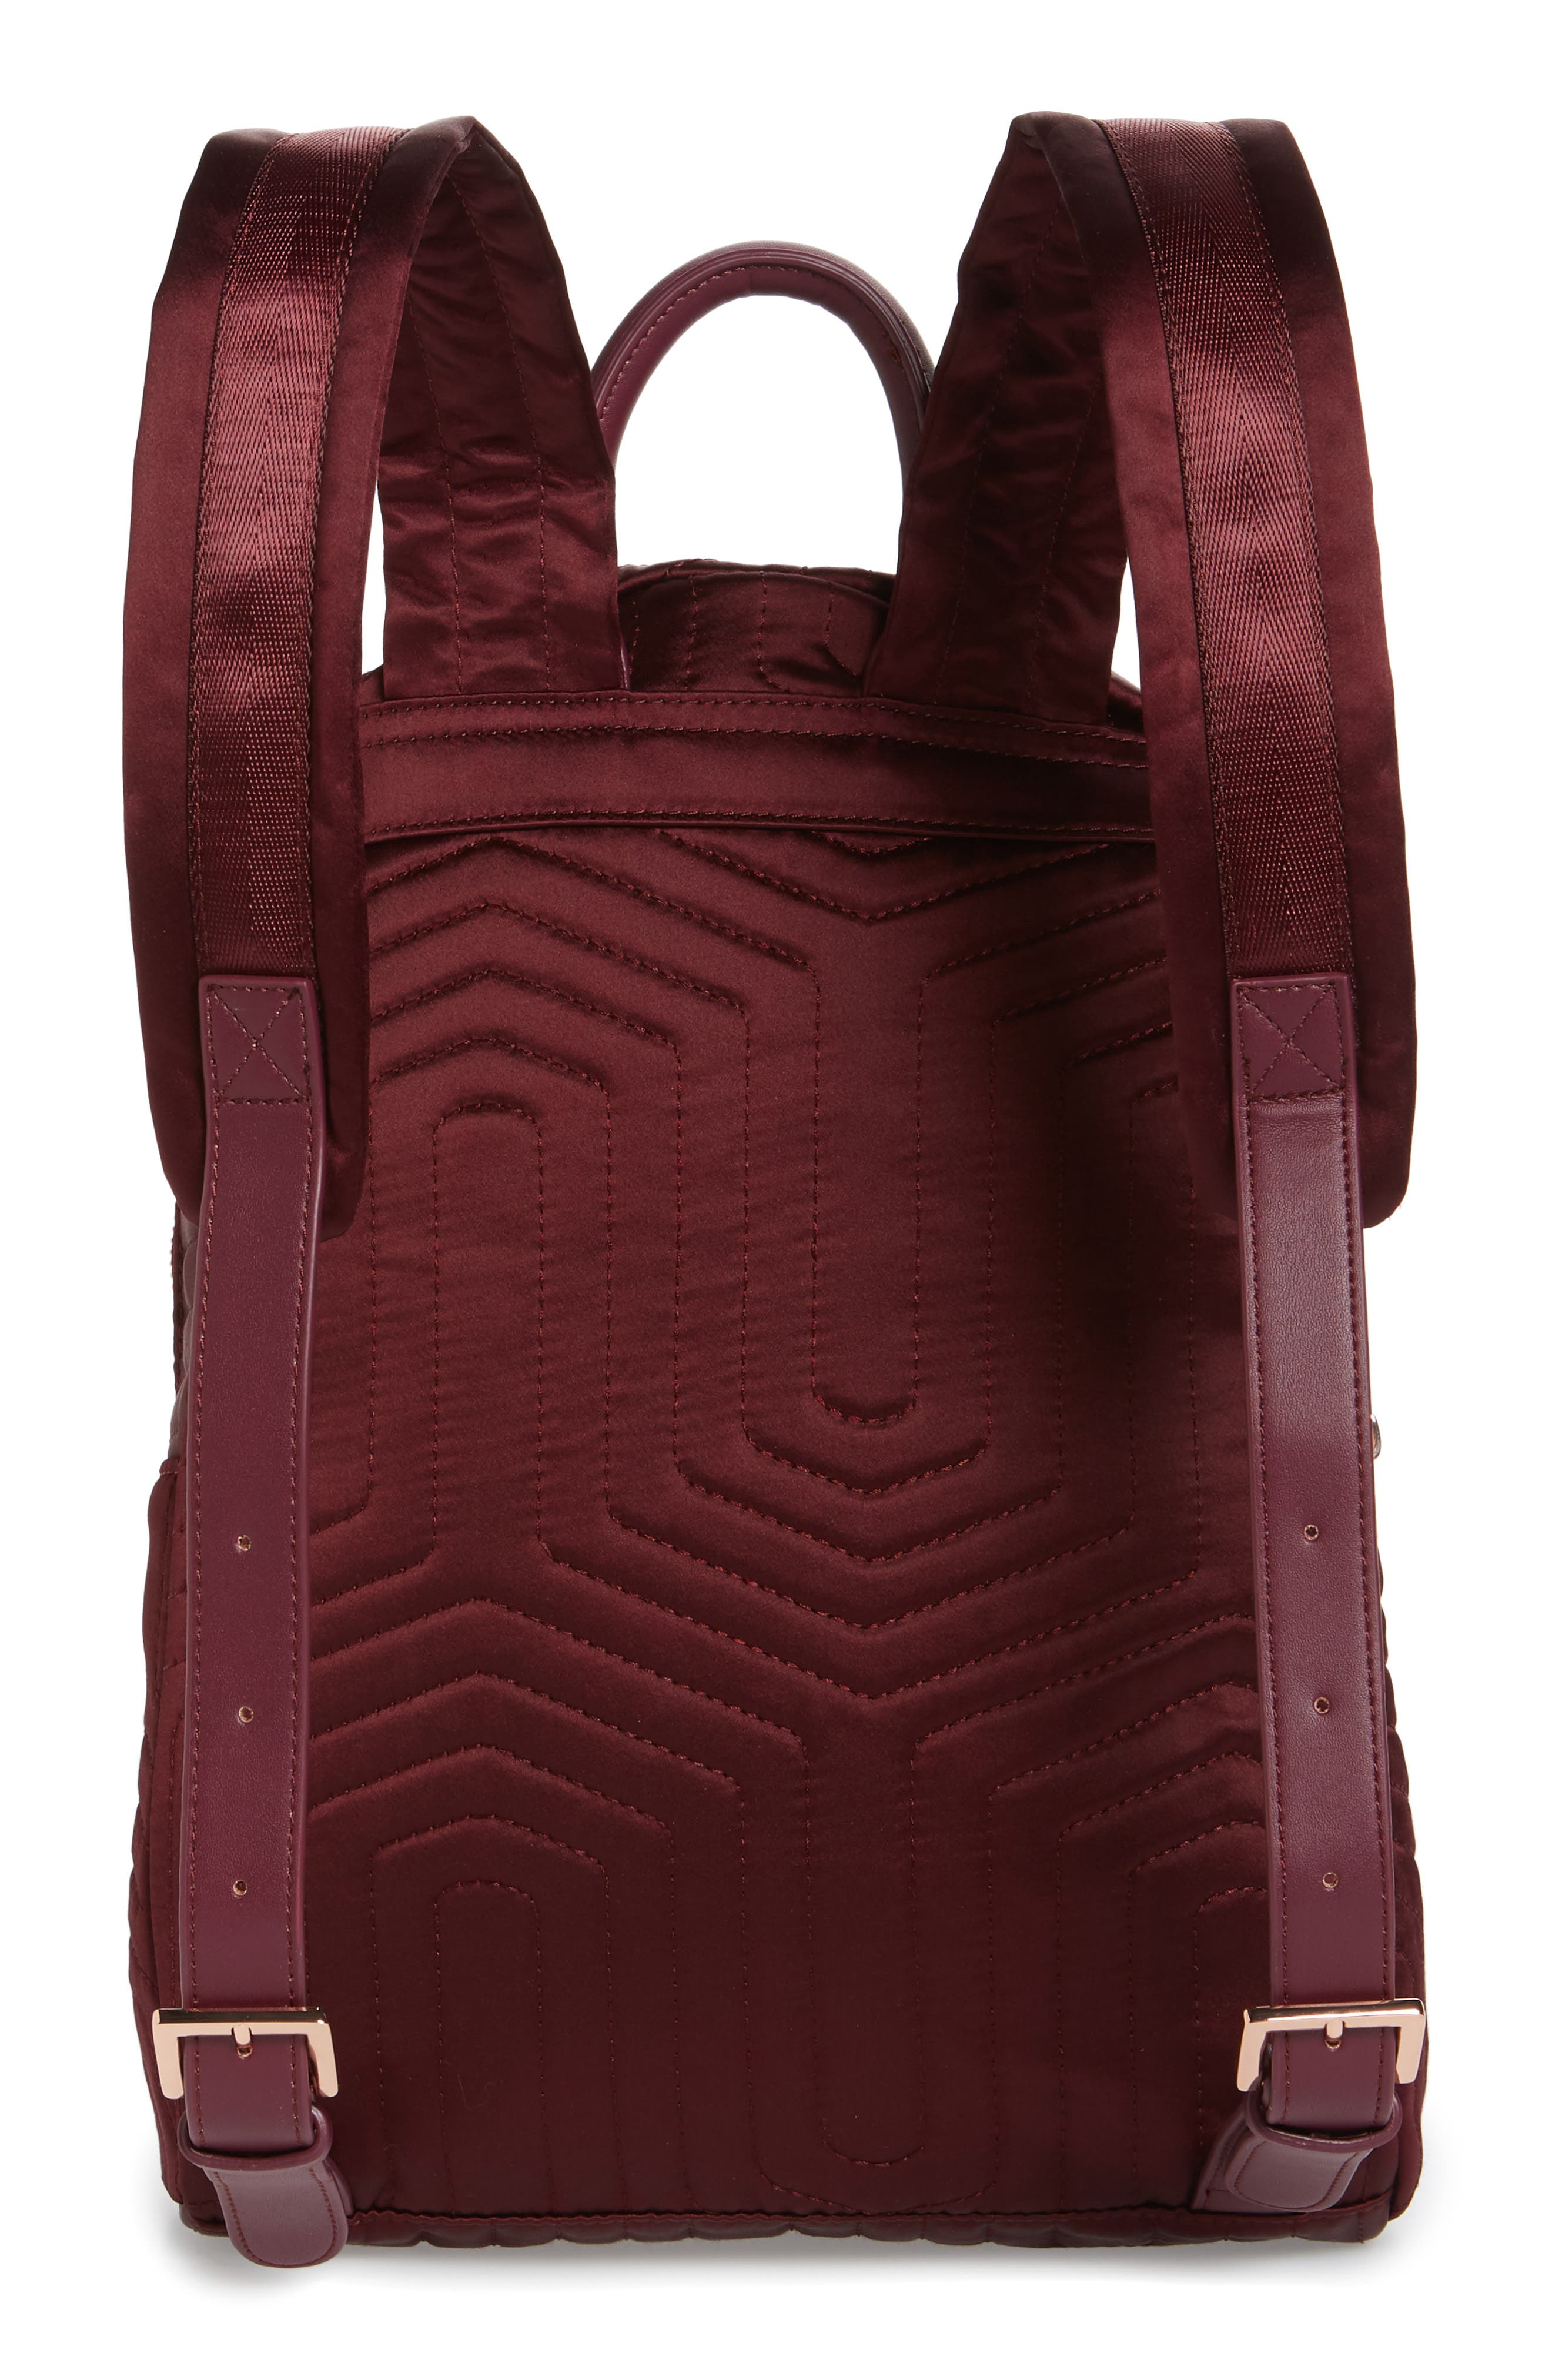 TED BAKER LONDON,                             Quilted Bow Backpack,                             Alternate thumbnail 3, color,                             210